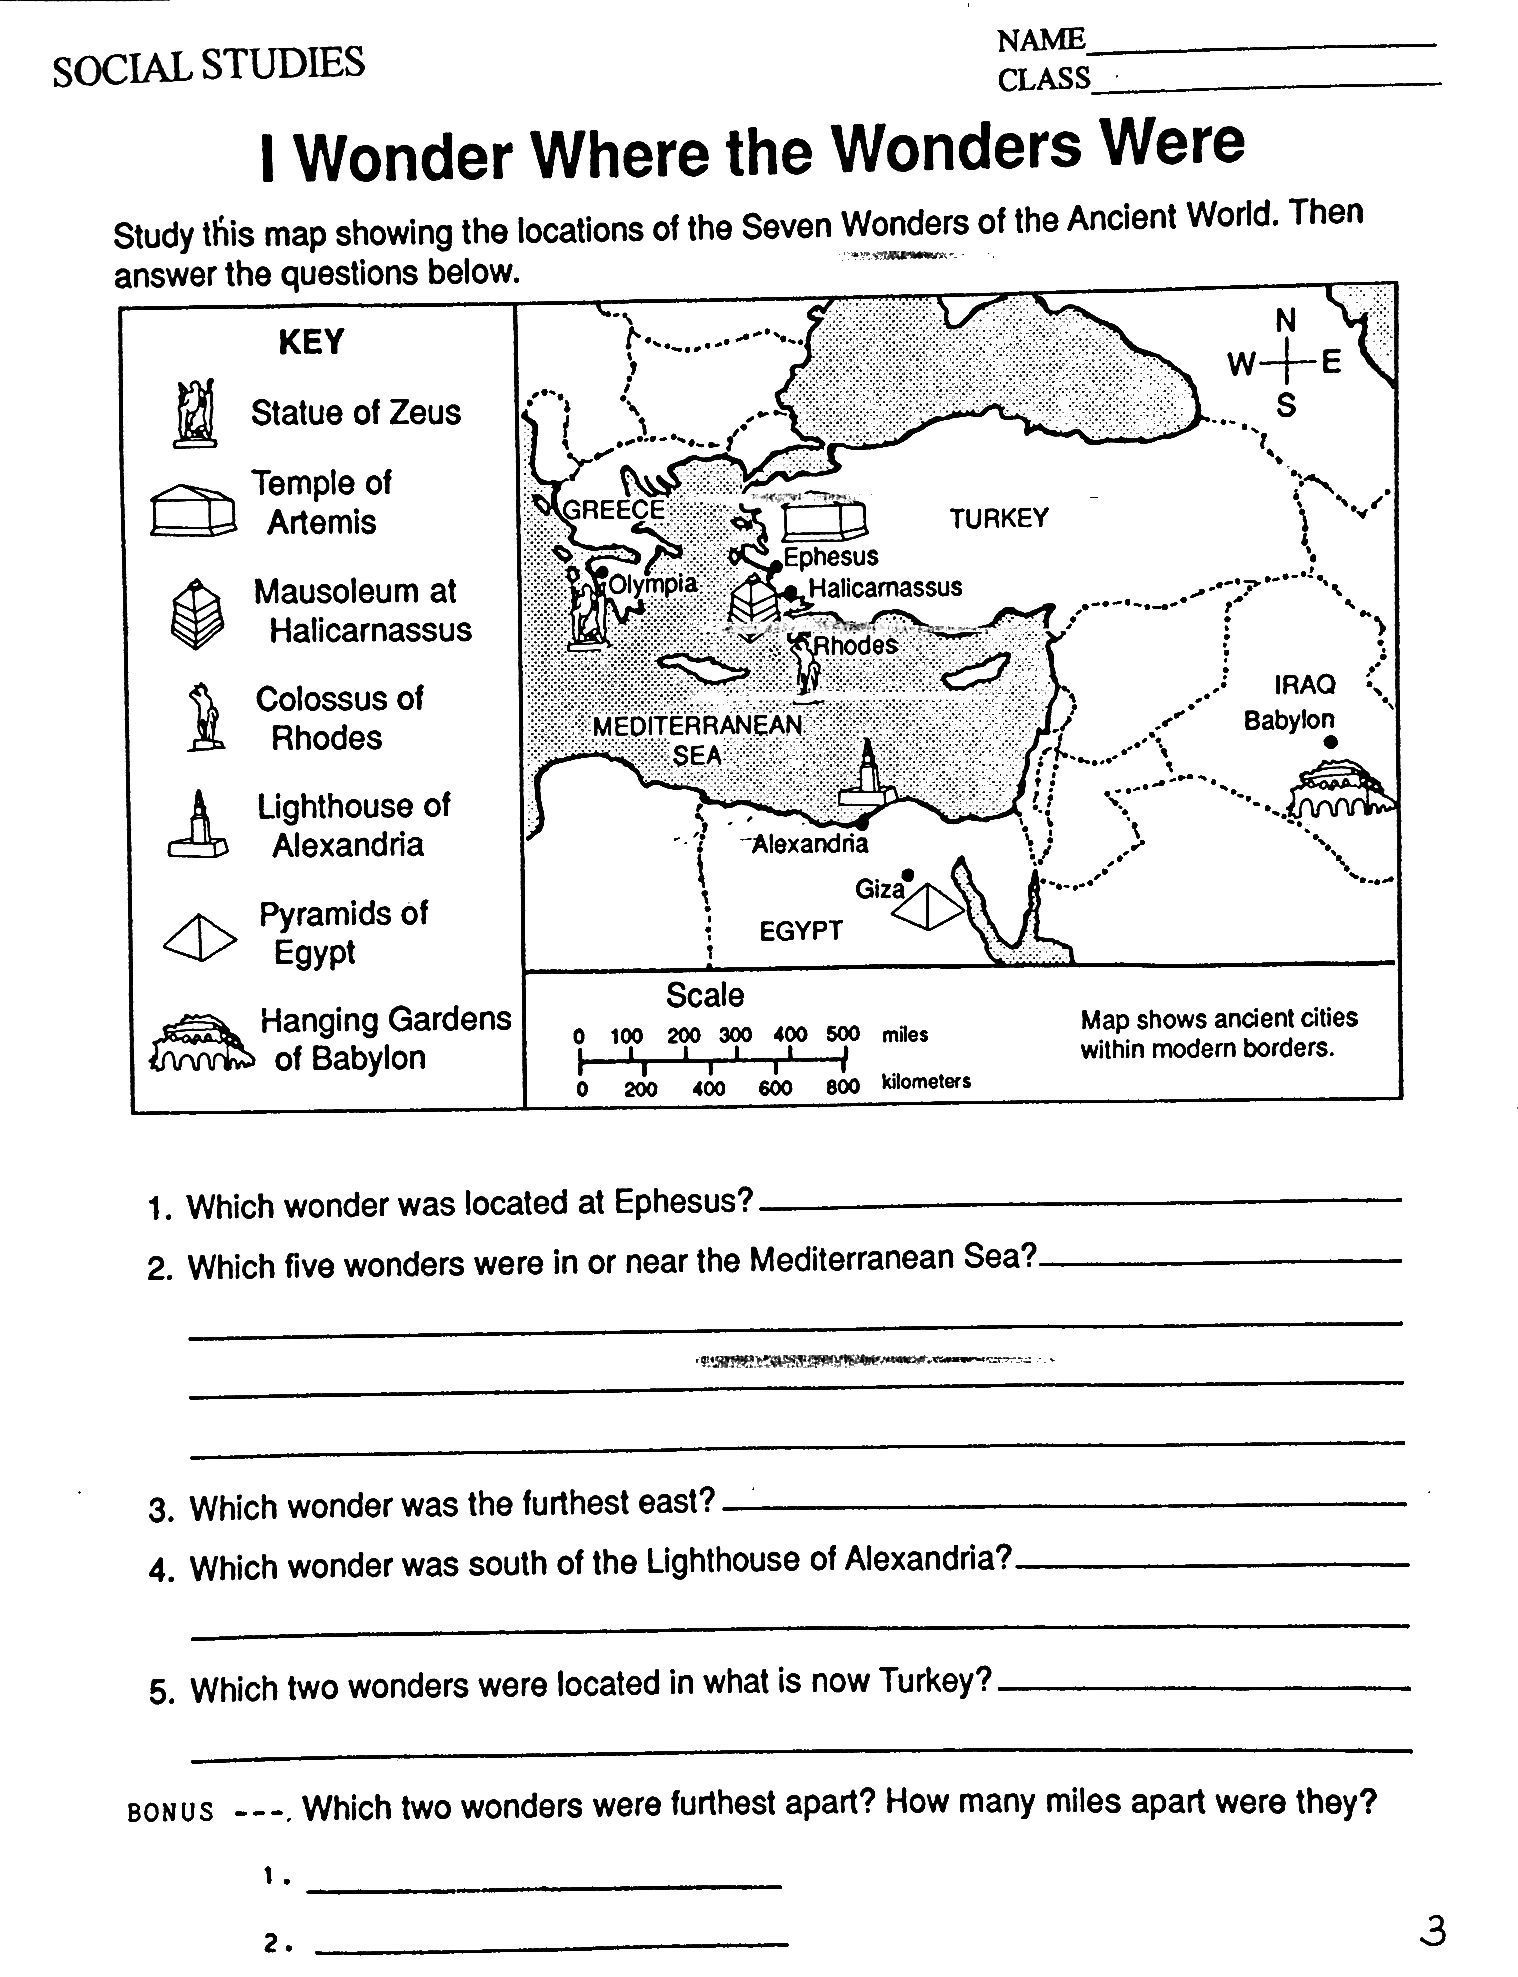 Worksheet For 4th Grade History